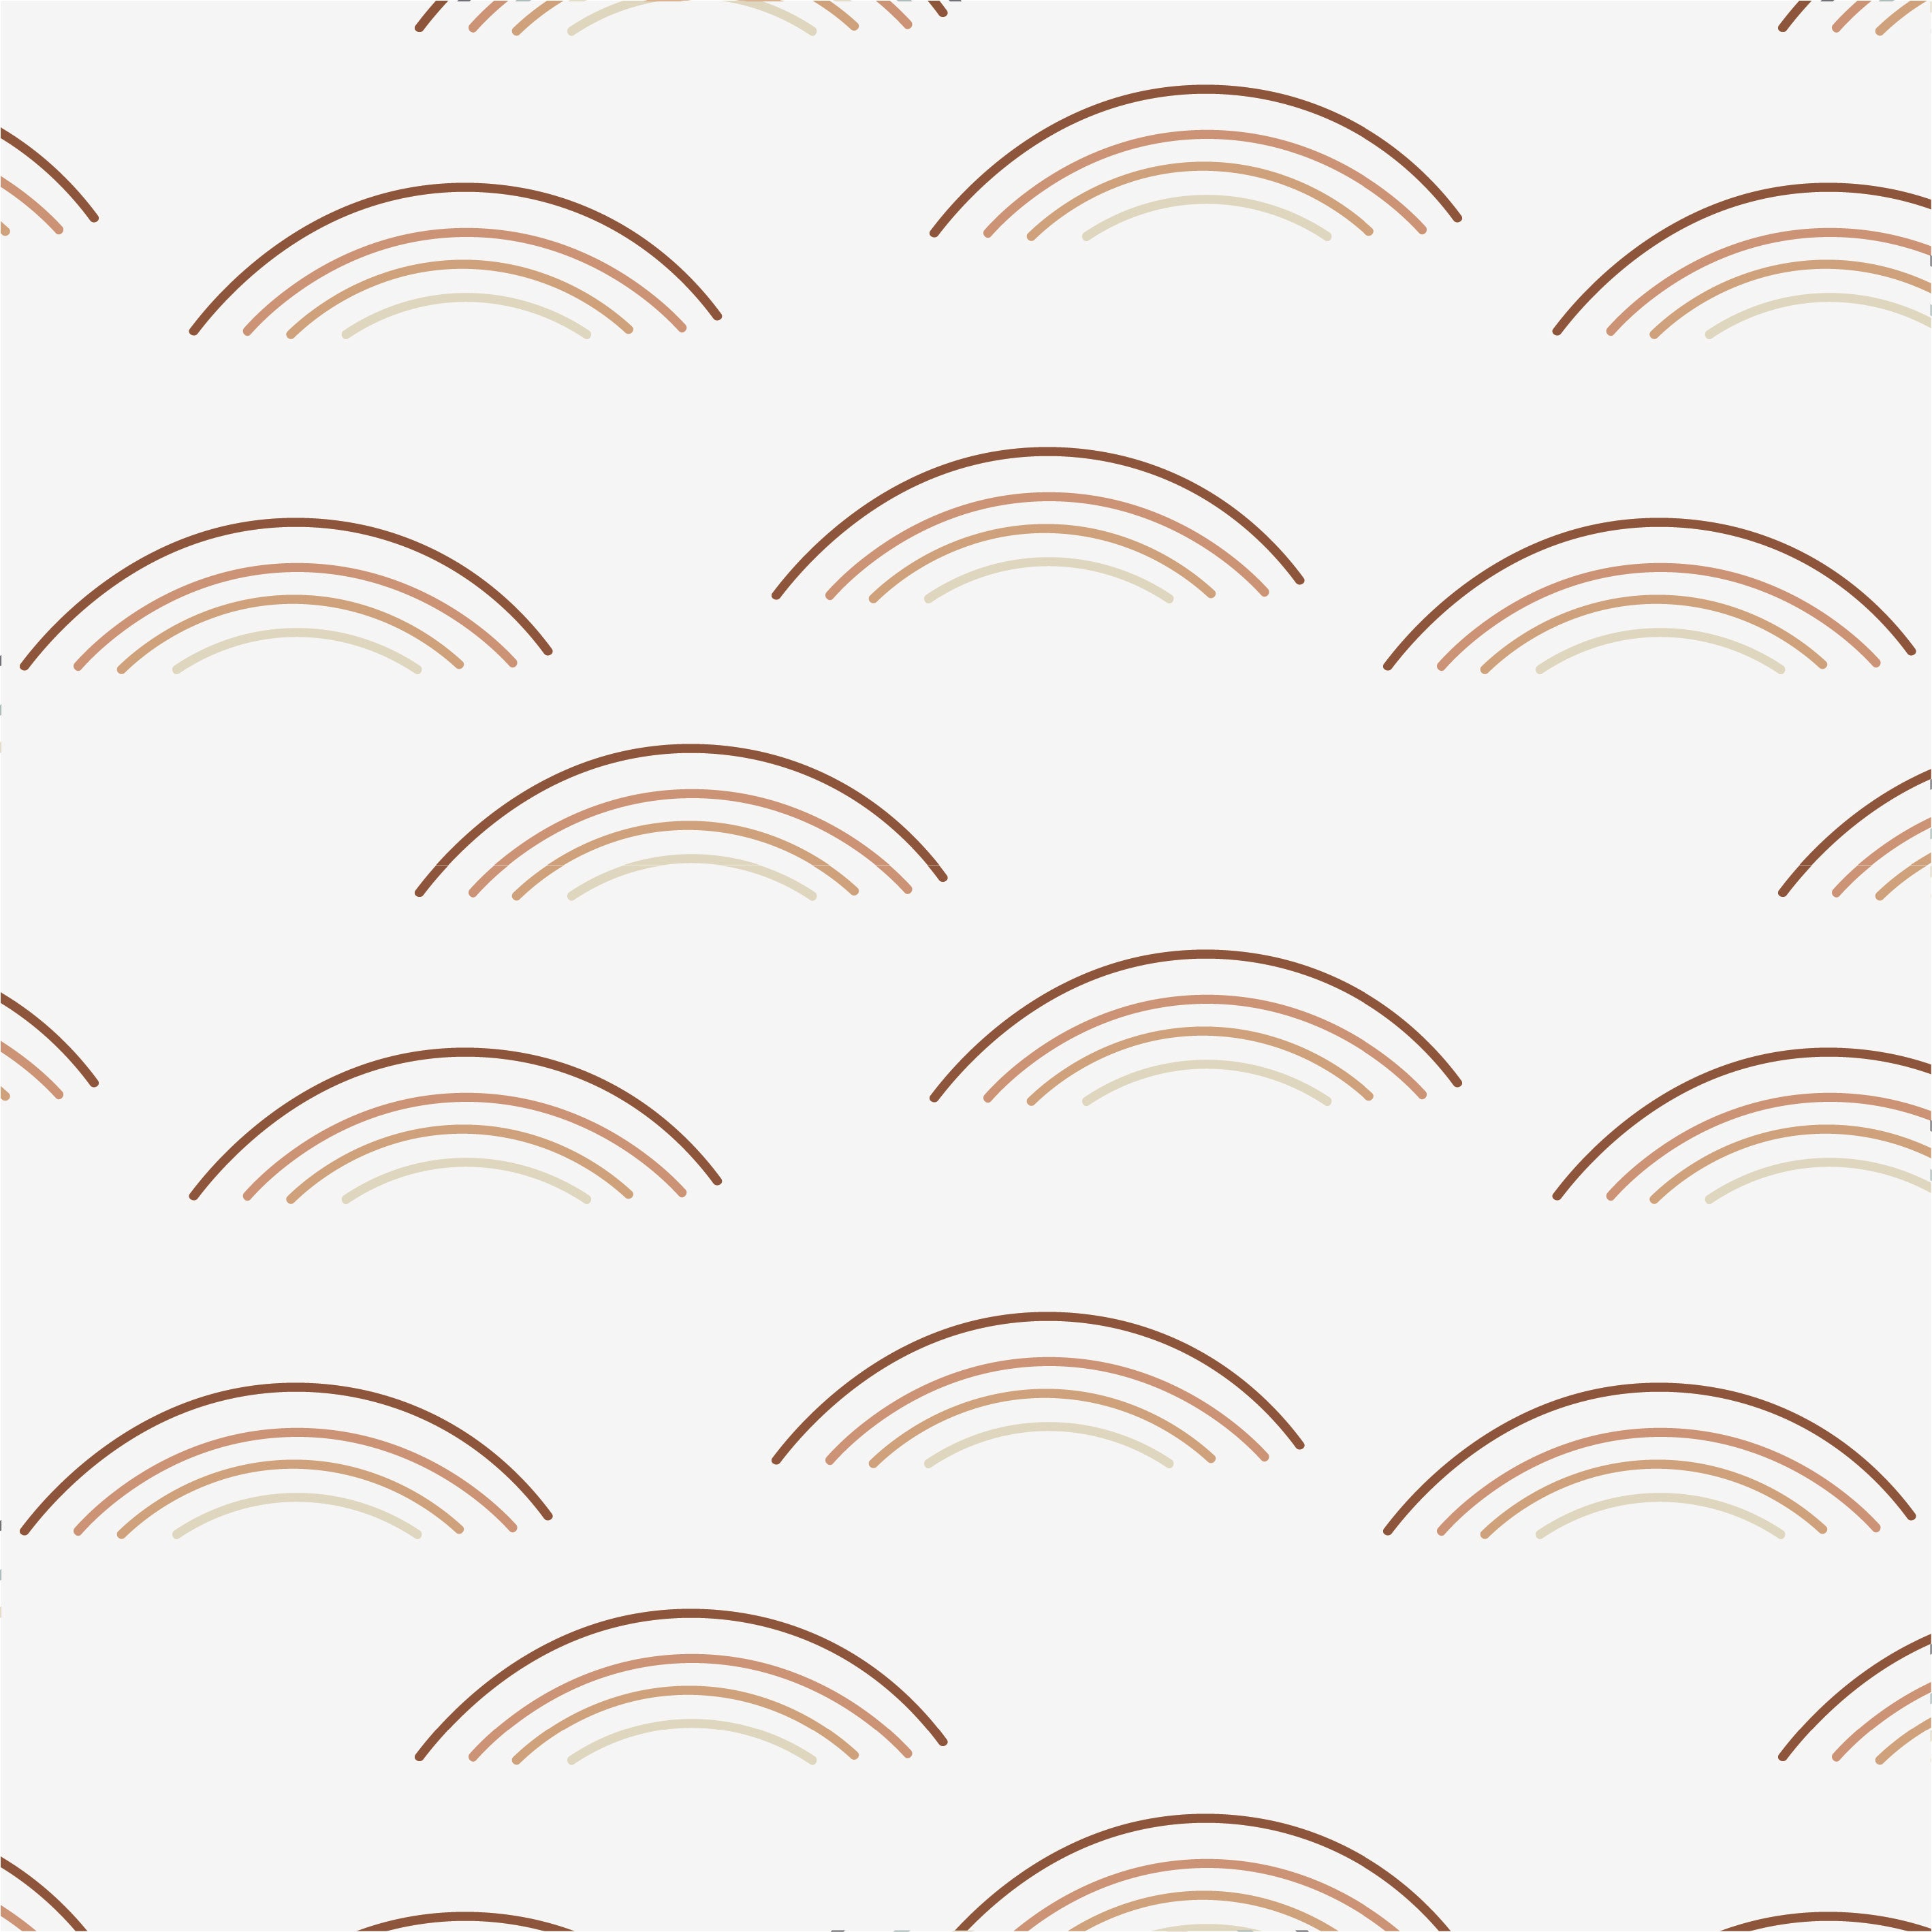 The Rainbow Wave Print Wallpaper - Rust